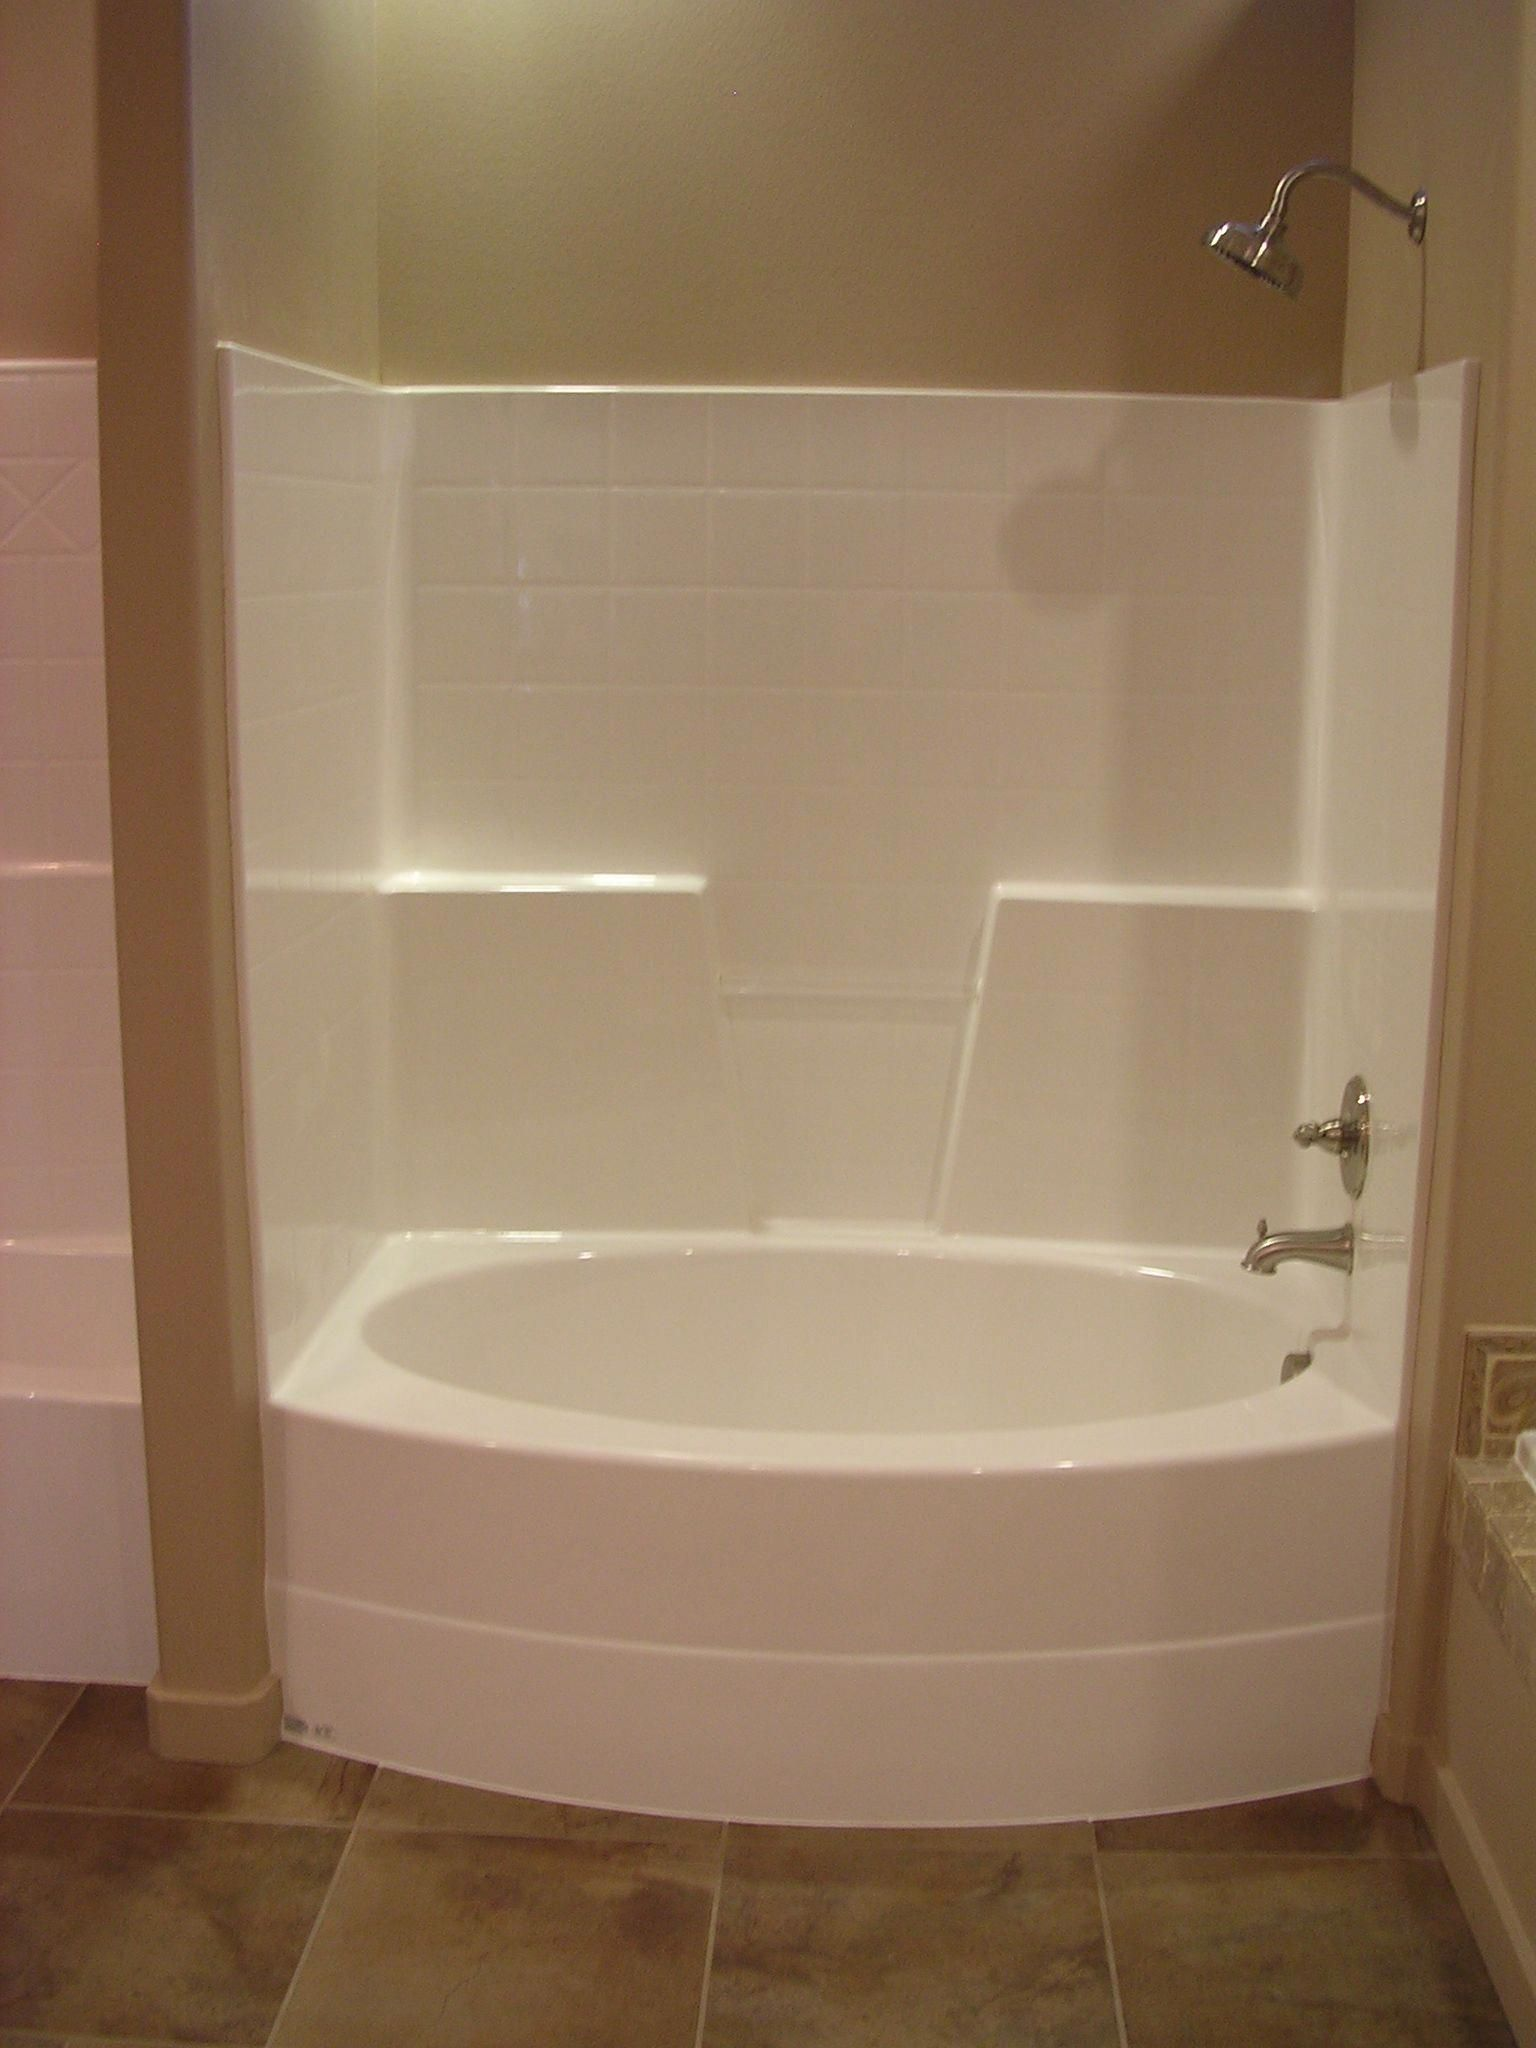 A Perfect Bath In 5 Essential Tips With Images Tub Remodel